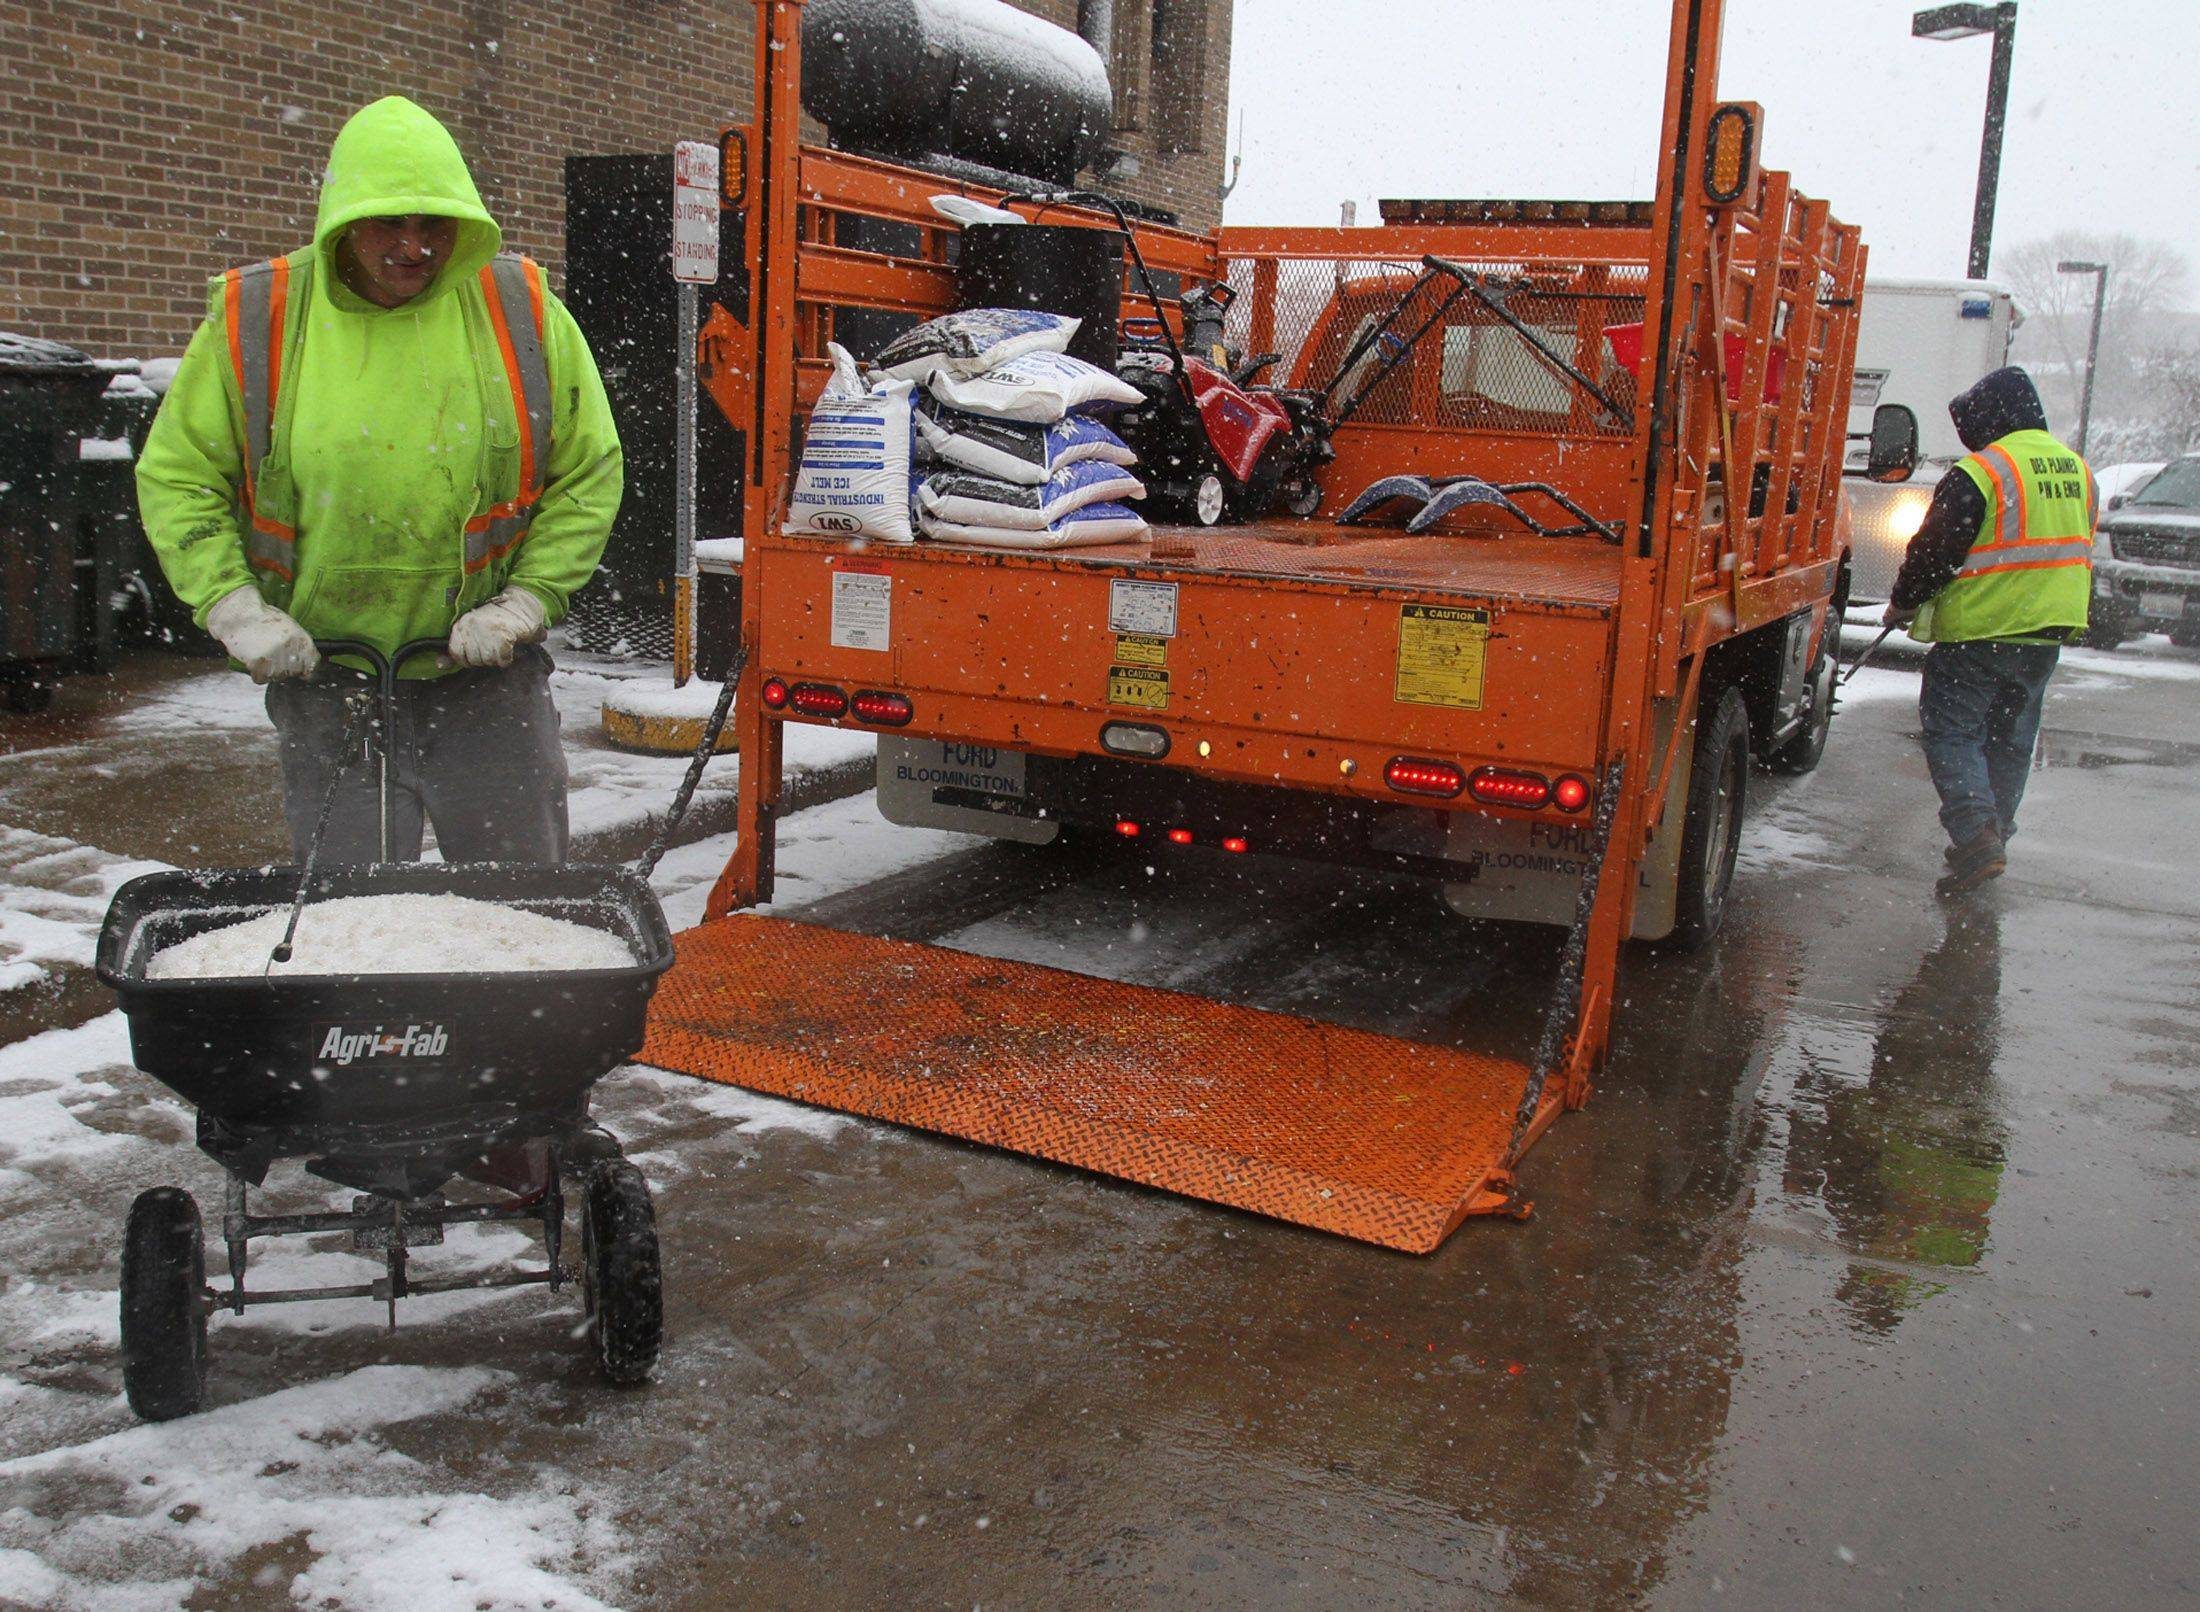 Andy Stiava with Des Plaines Public Works and Engineering Department salts behind City of Des Plaines Civic Center .